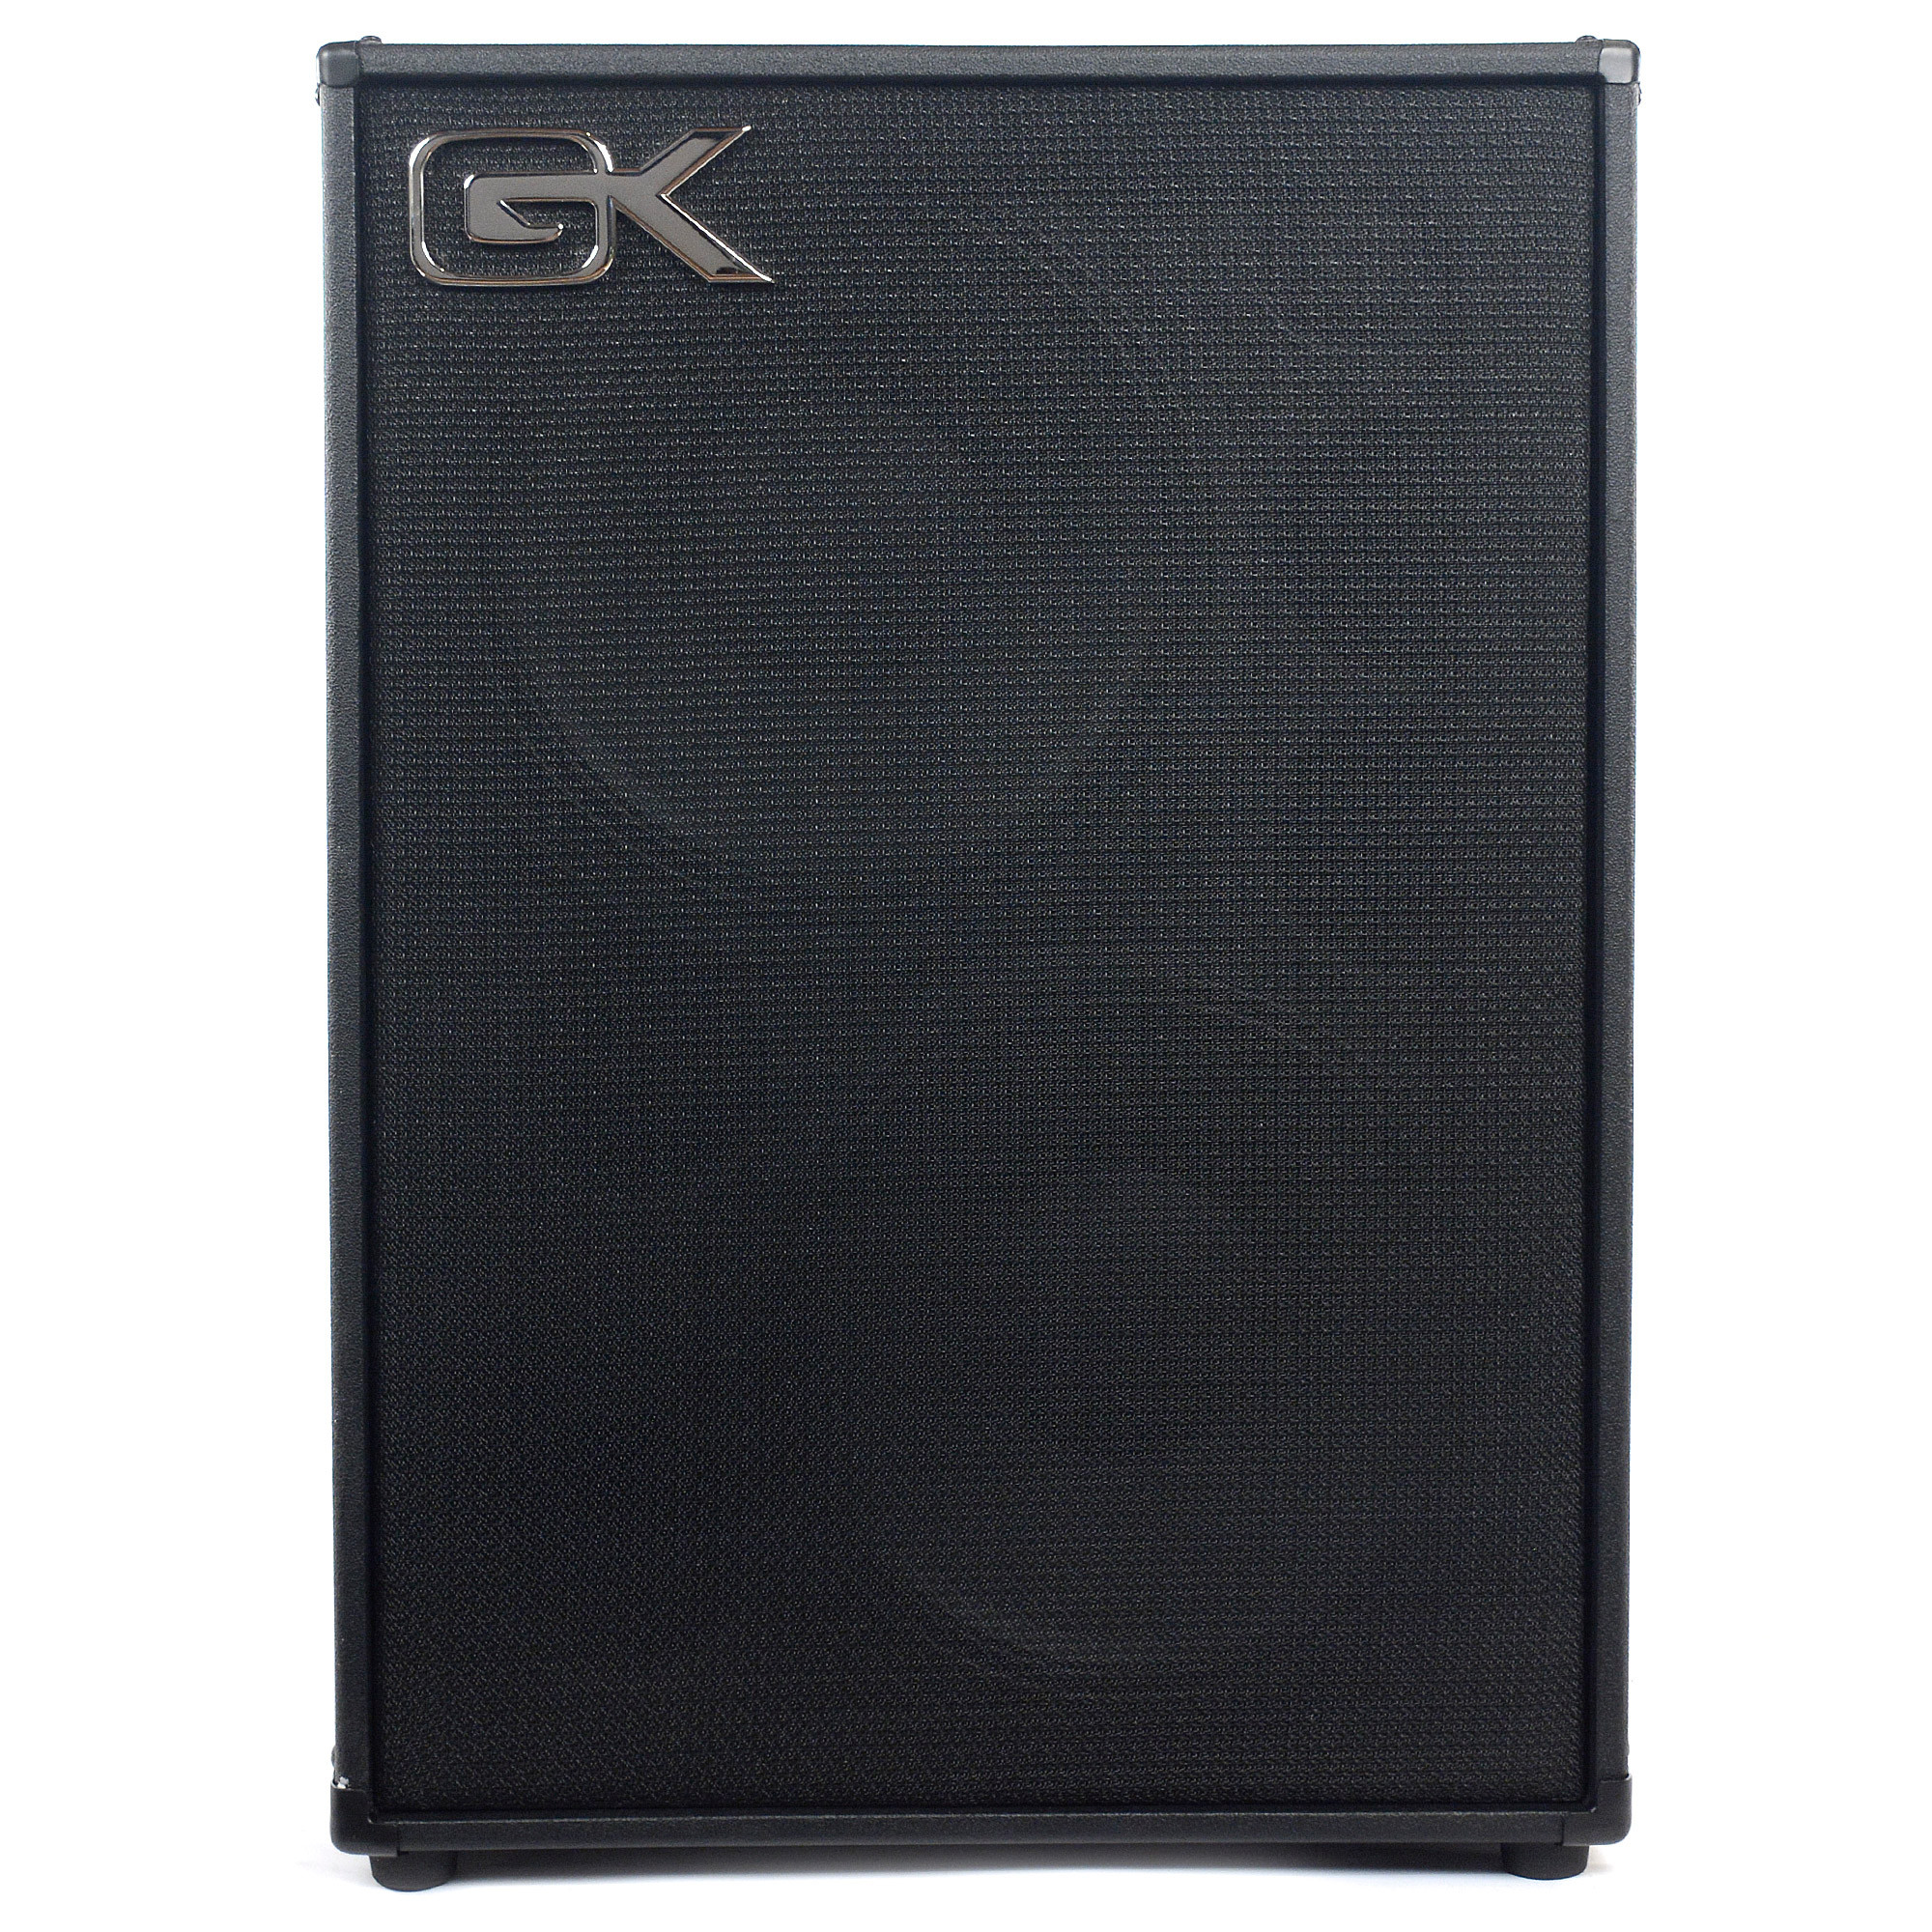 Gallien-Krueger MB212-II Ultra Light Bass Combo 500W 2x12 by Gallien-Krueger